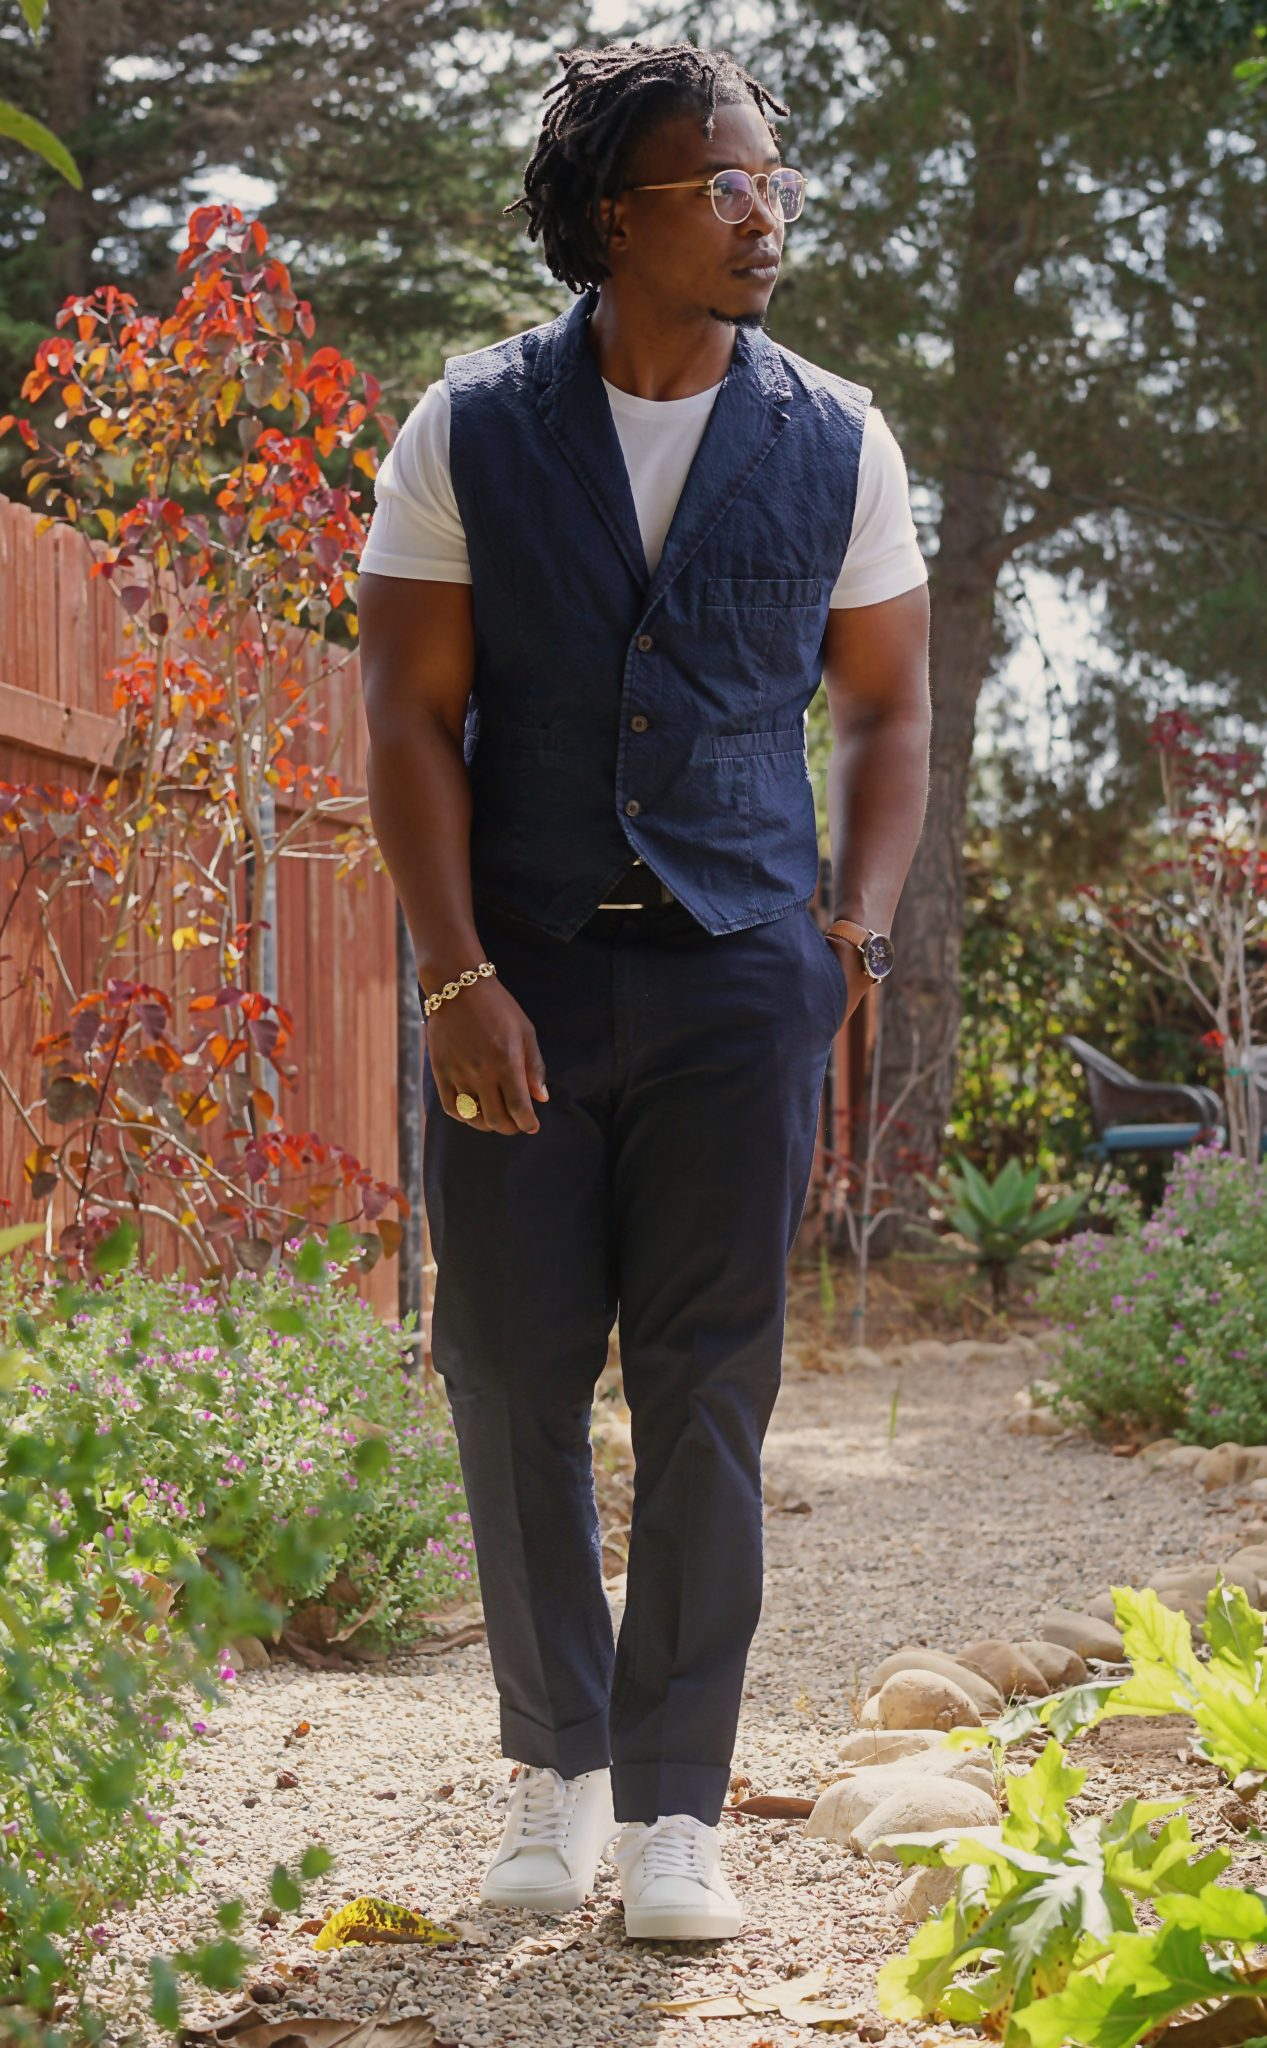 blue-seersucker-suit-white-shirt-casual-summer-outfit-ideas-reid-white-leather-sneakers-beckett-simonon